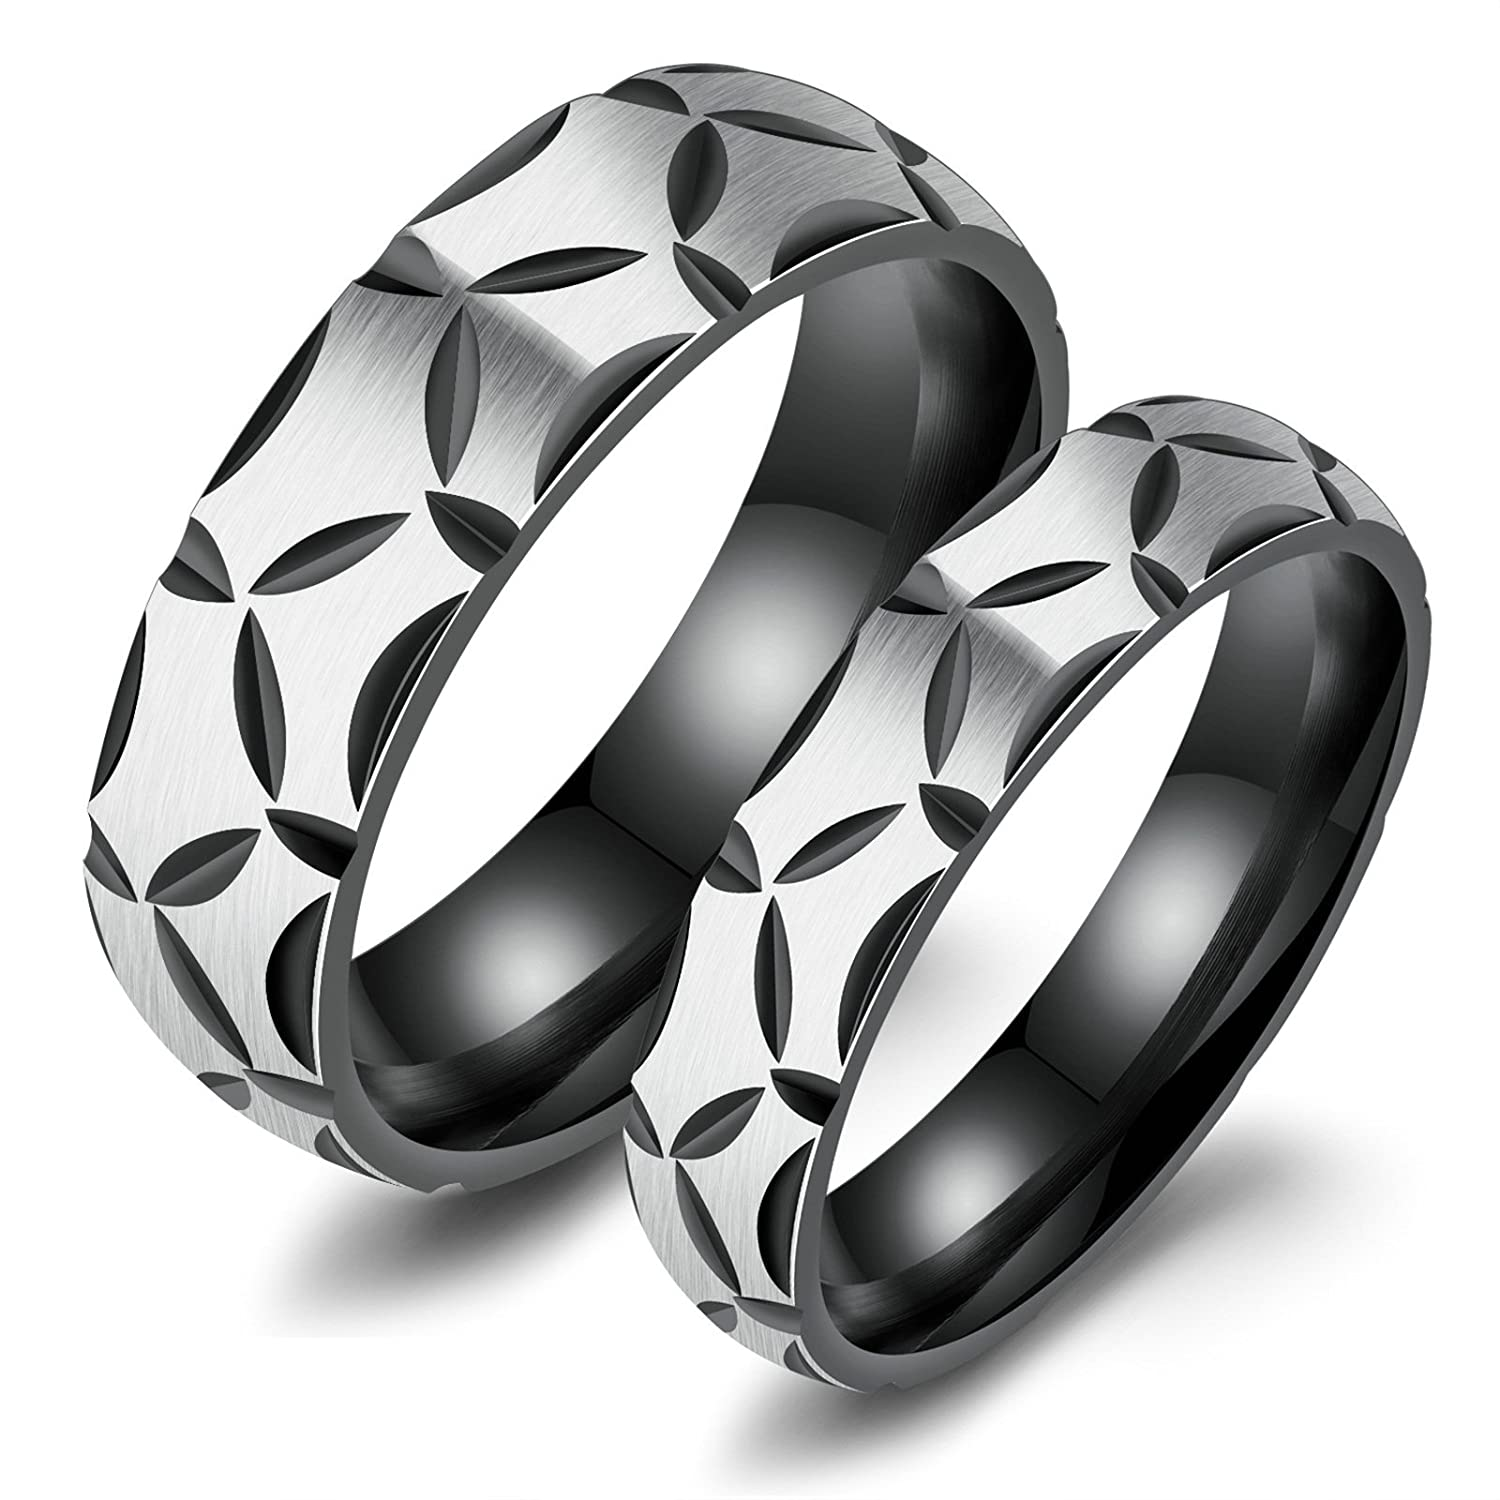 Aooaz 2 Pcs Friendship Rings Stainless Steel Rings for Couples Black Rings with Free Engraving Novelty Jewelry Gift